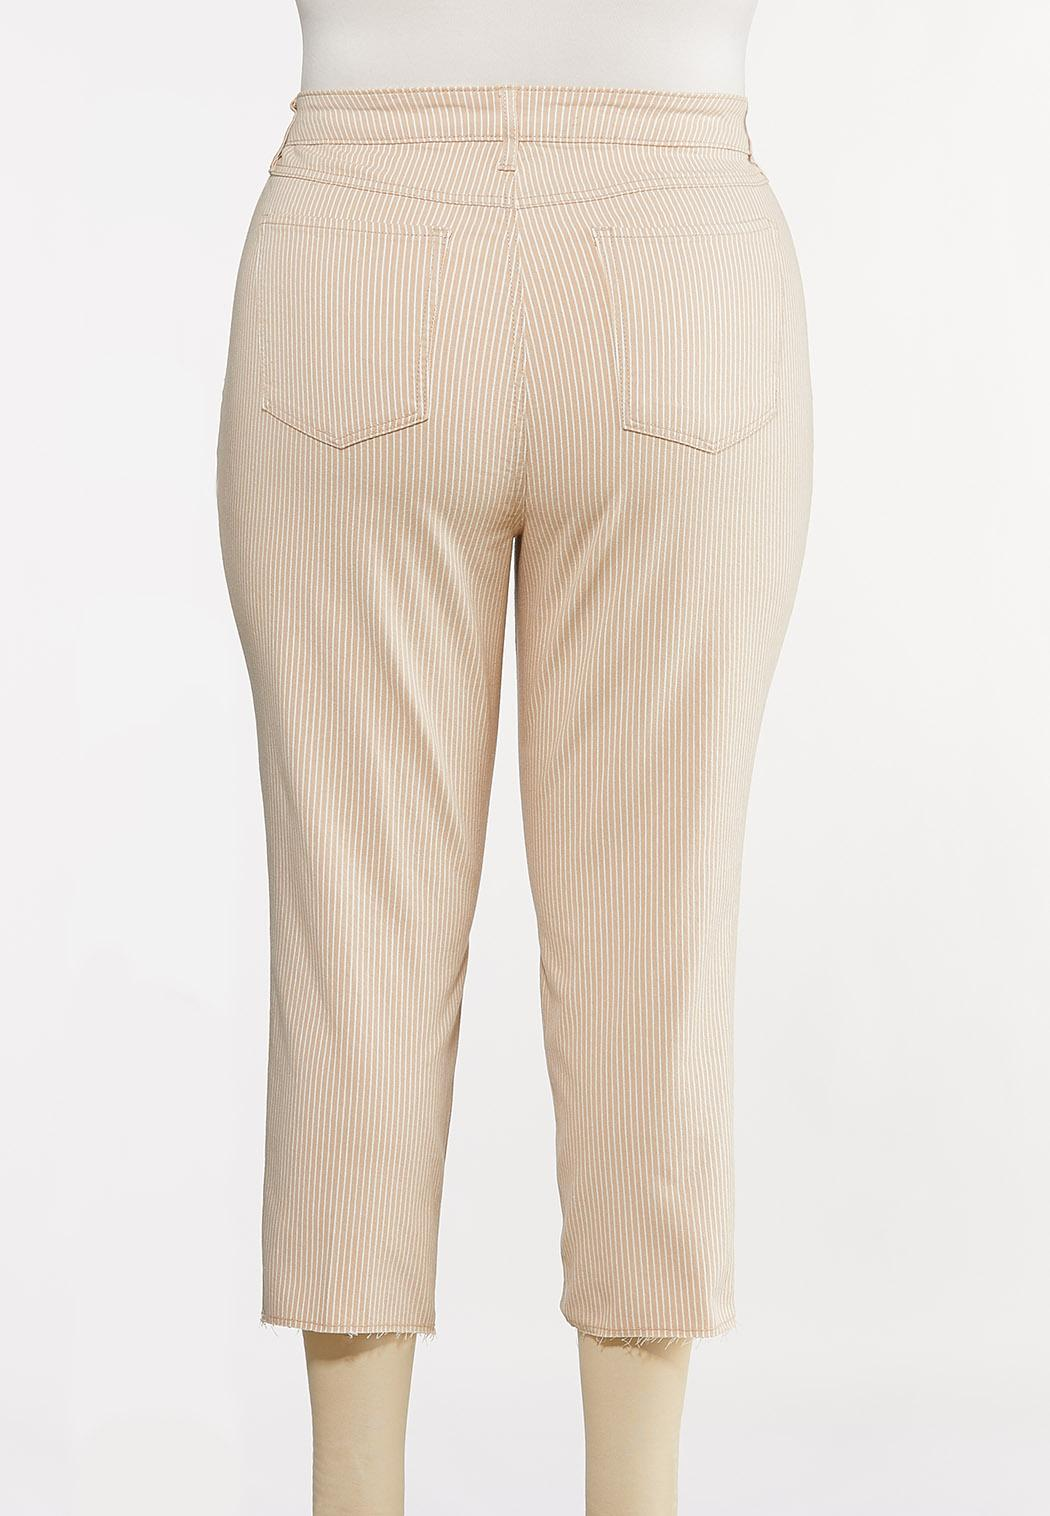 Plus Size Neutral Stripe Ankle Jeans (Item #44162338)